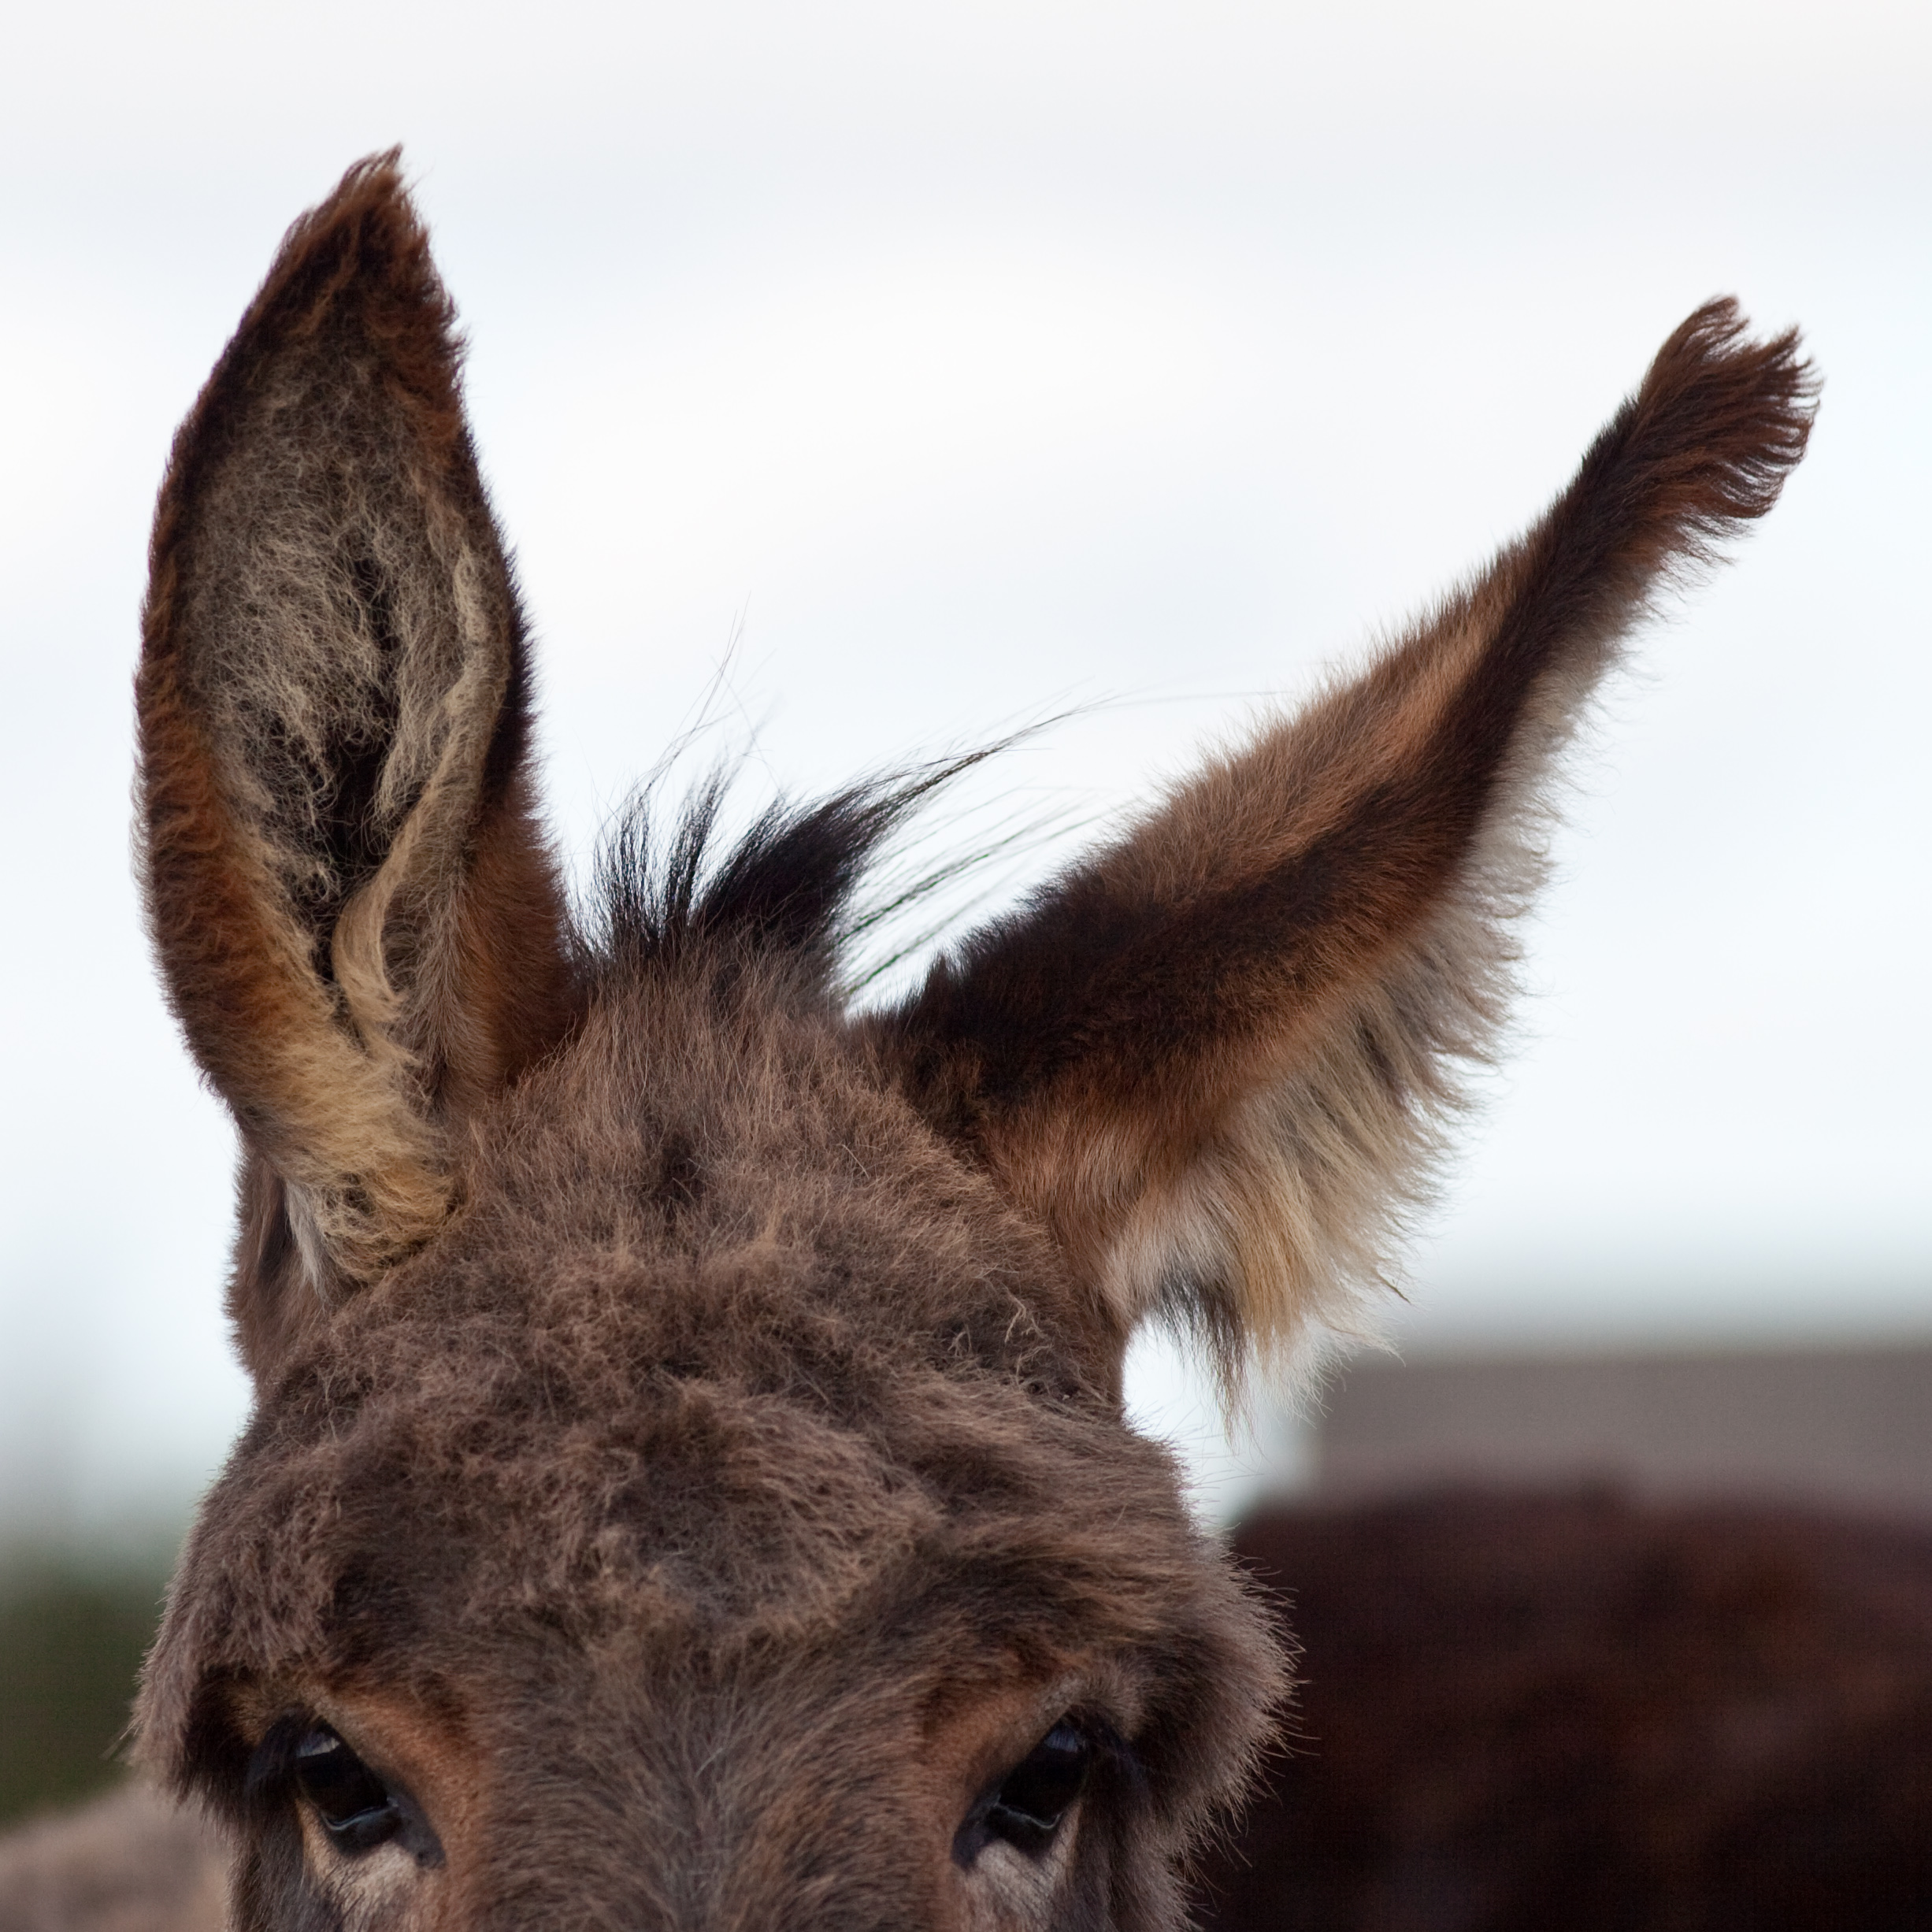 Donkeys_ear.jpeg, de Hakan Dahlstrom, Suède, via wikimedia Commons